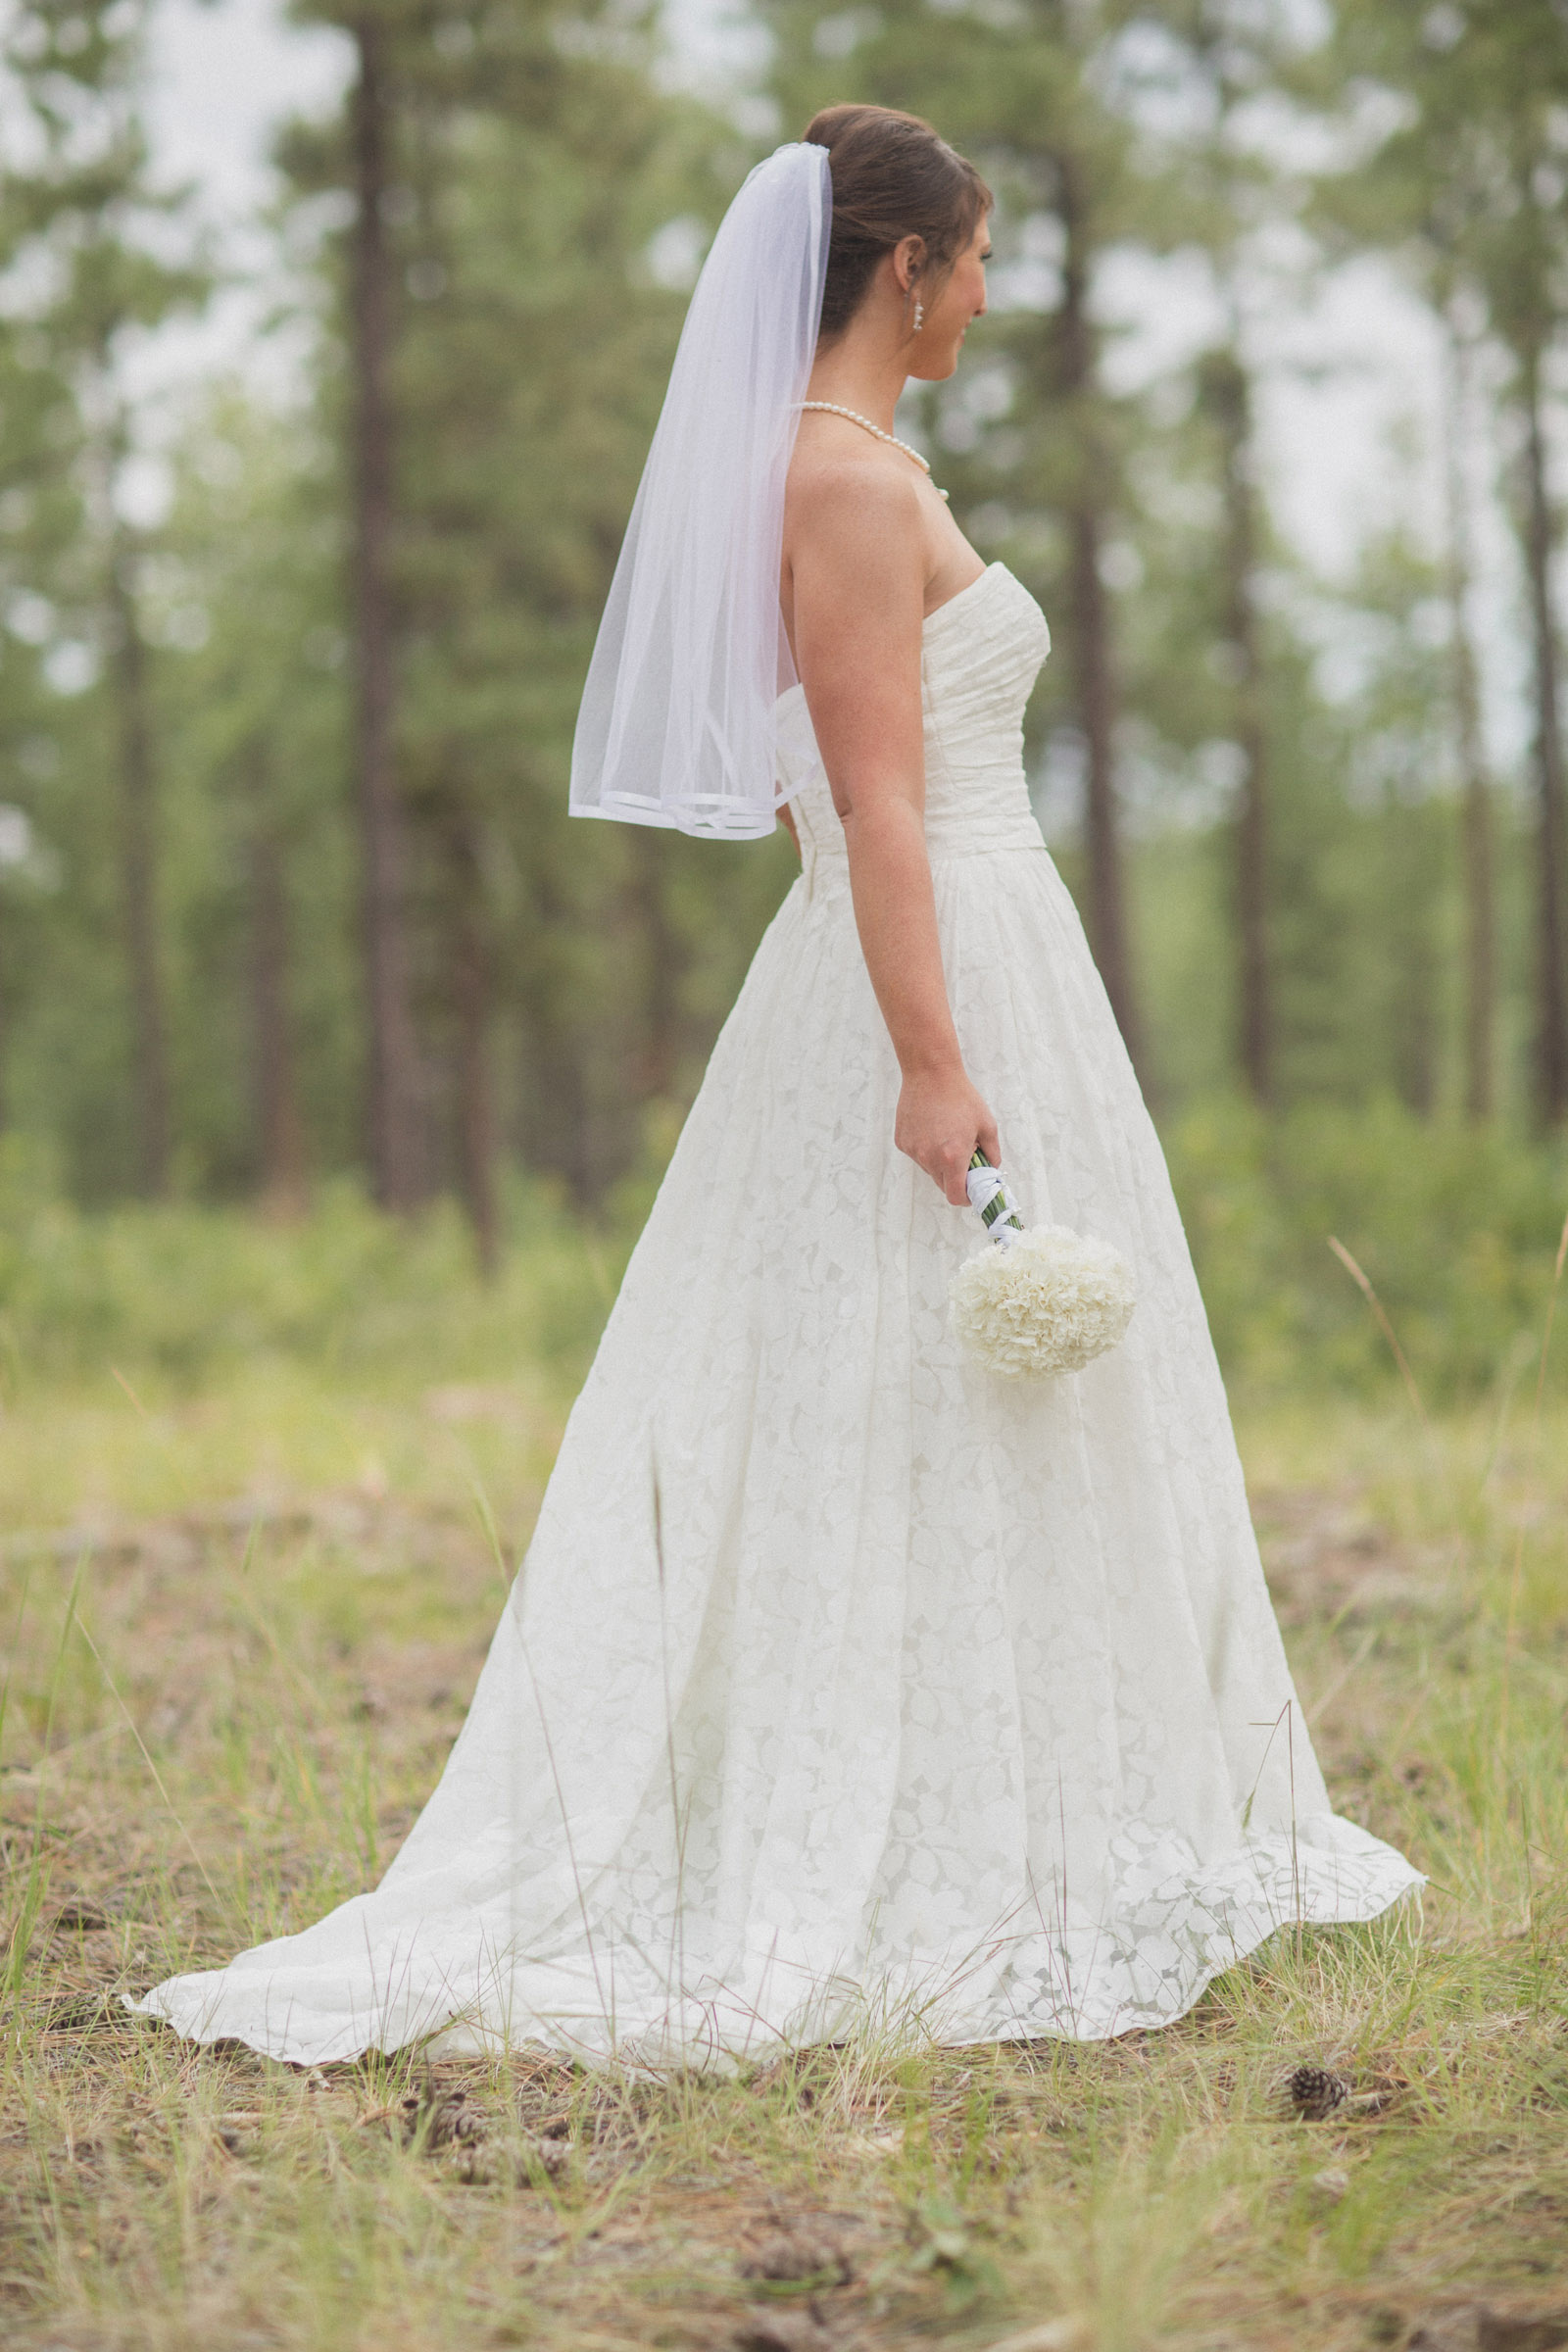 039-bride-wedding-wooden-woods-forest-pictures-photos-dress-photography-porttraits